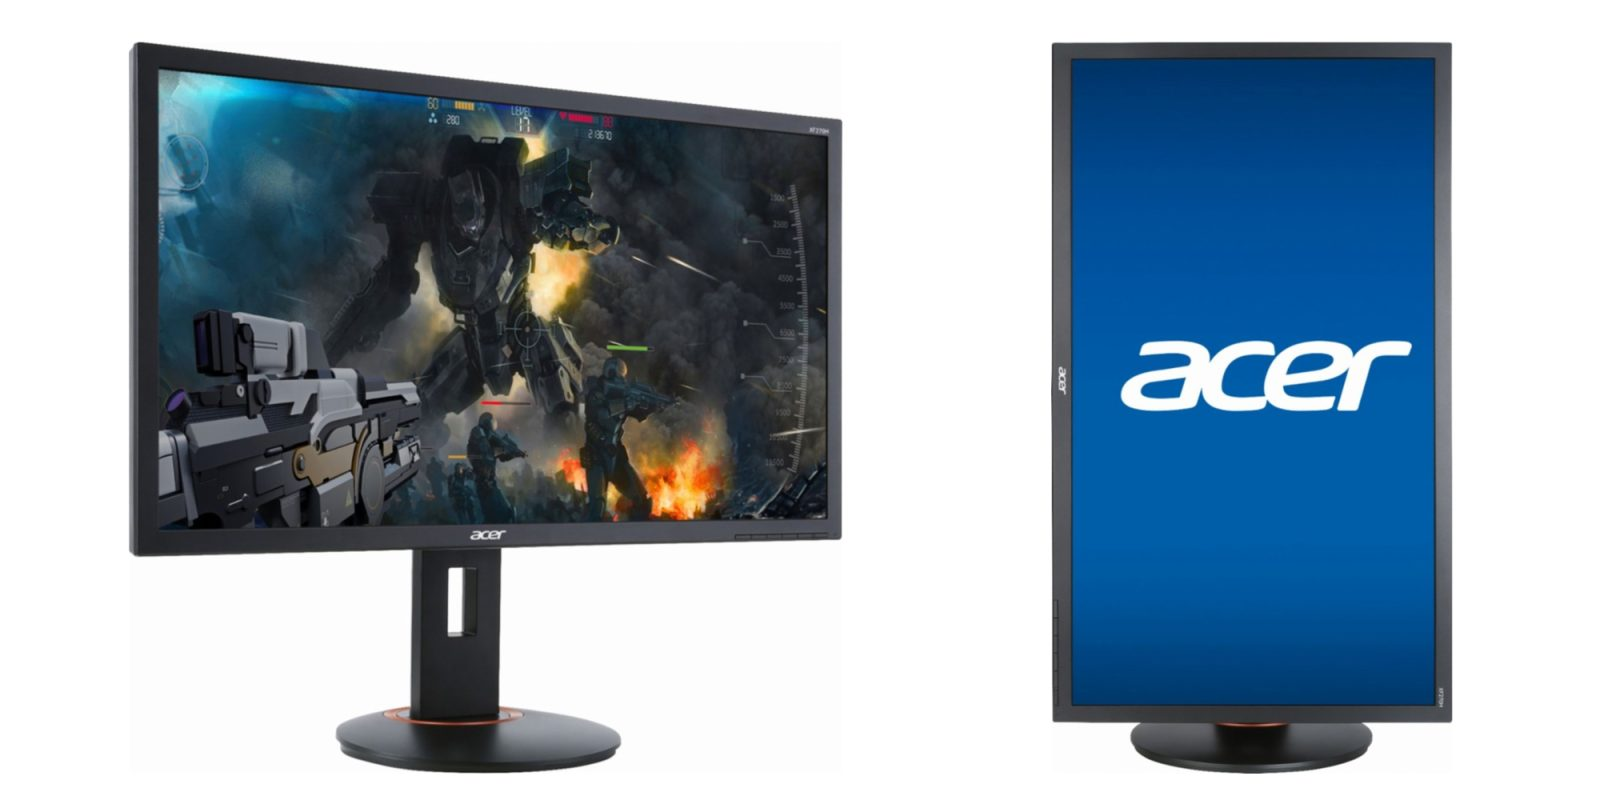 Step up your game w/ Acer's 27-inch 240Hz Monitor at $300 (Reg  up